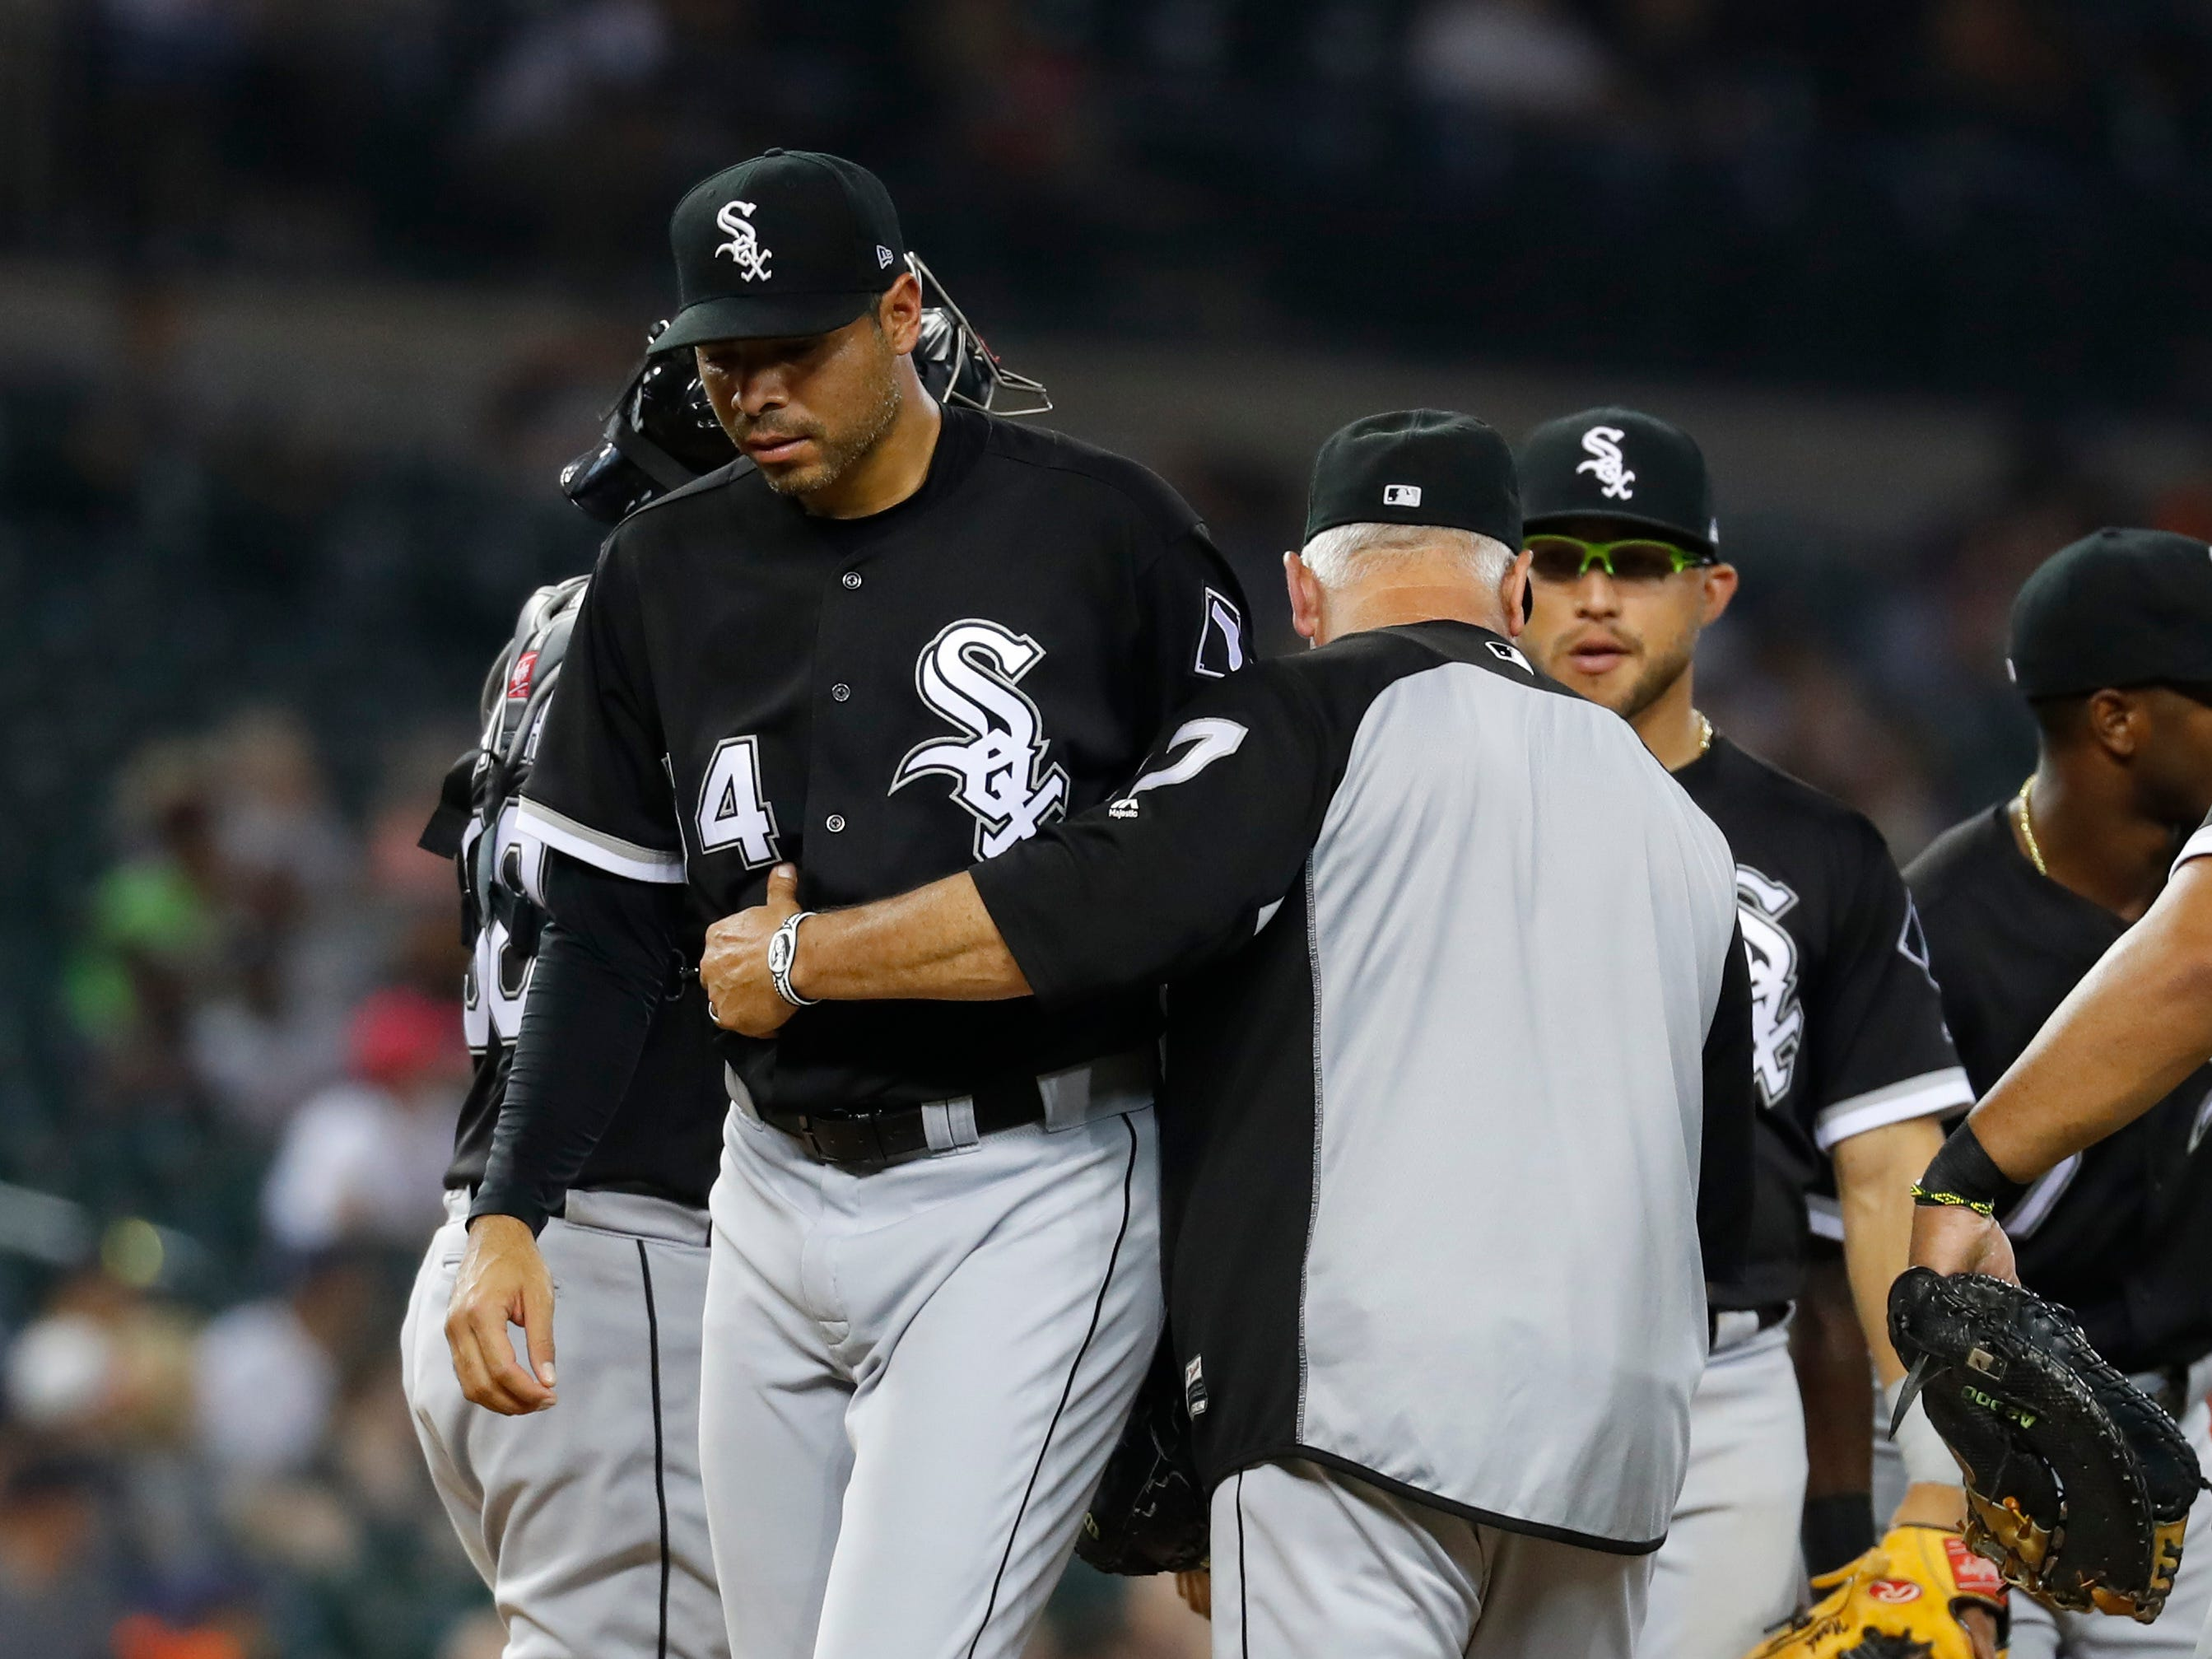 Chicago White Sox manager Rick Renteria takes the ball from relief pitcher Jeanmar Gomez in the seventh inning.